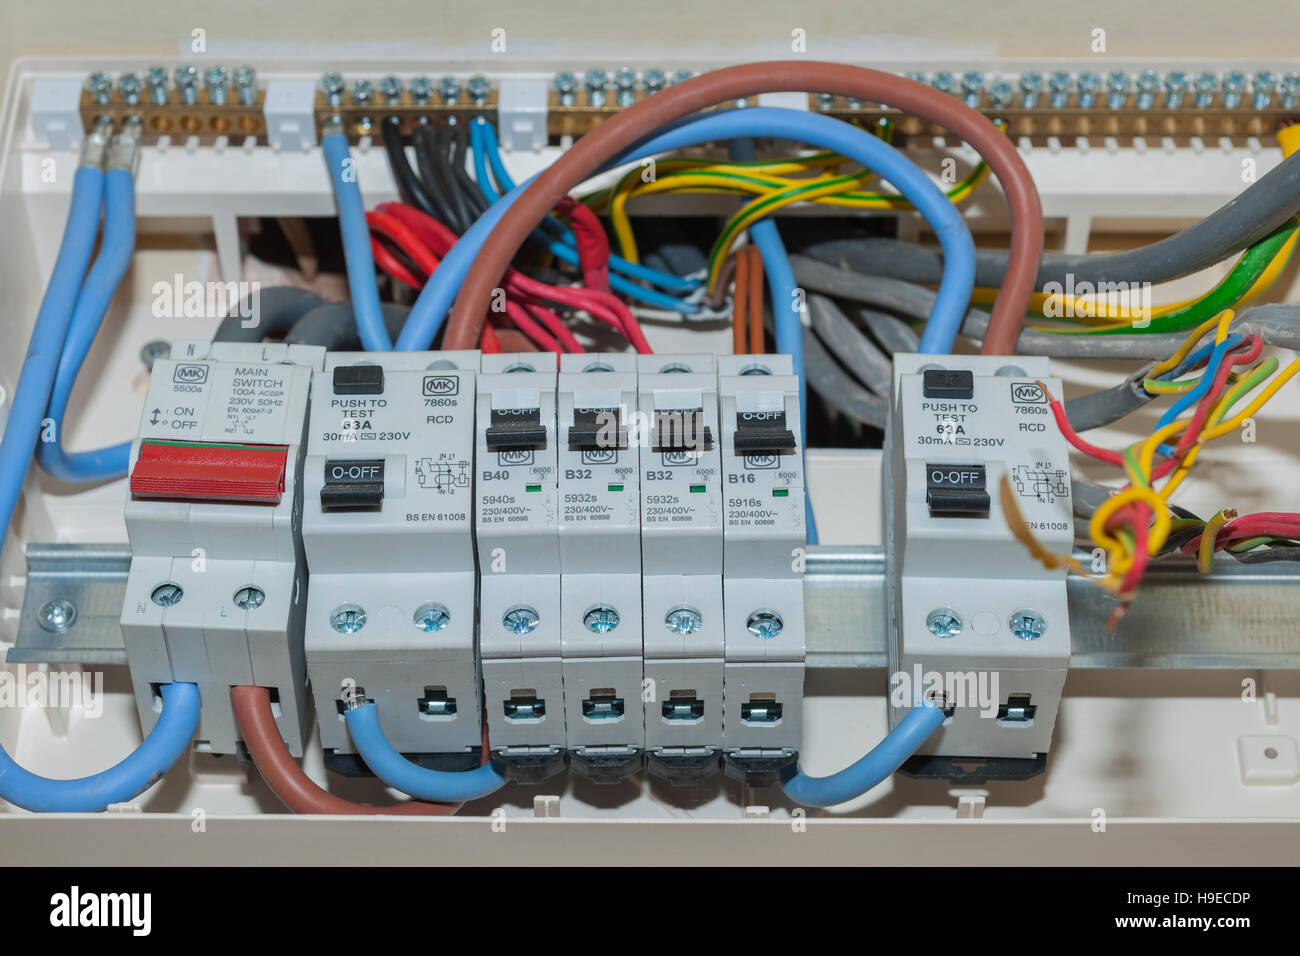 A RCD fuse box in the Uk